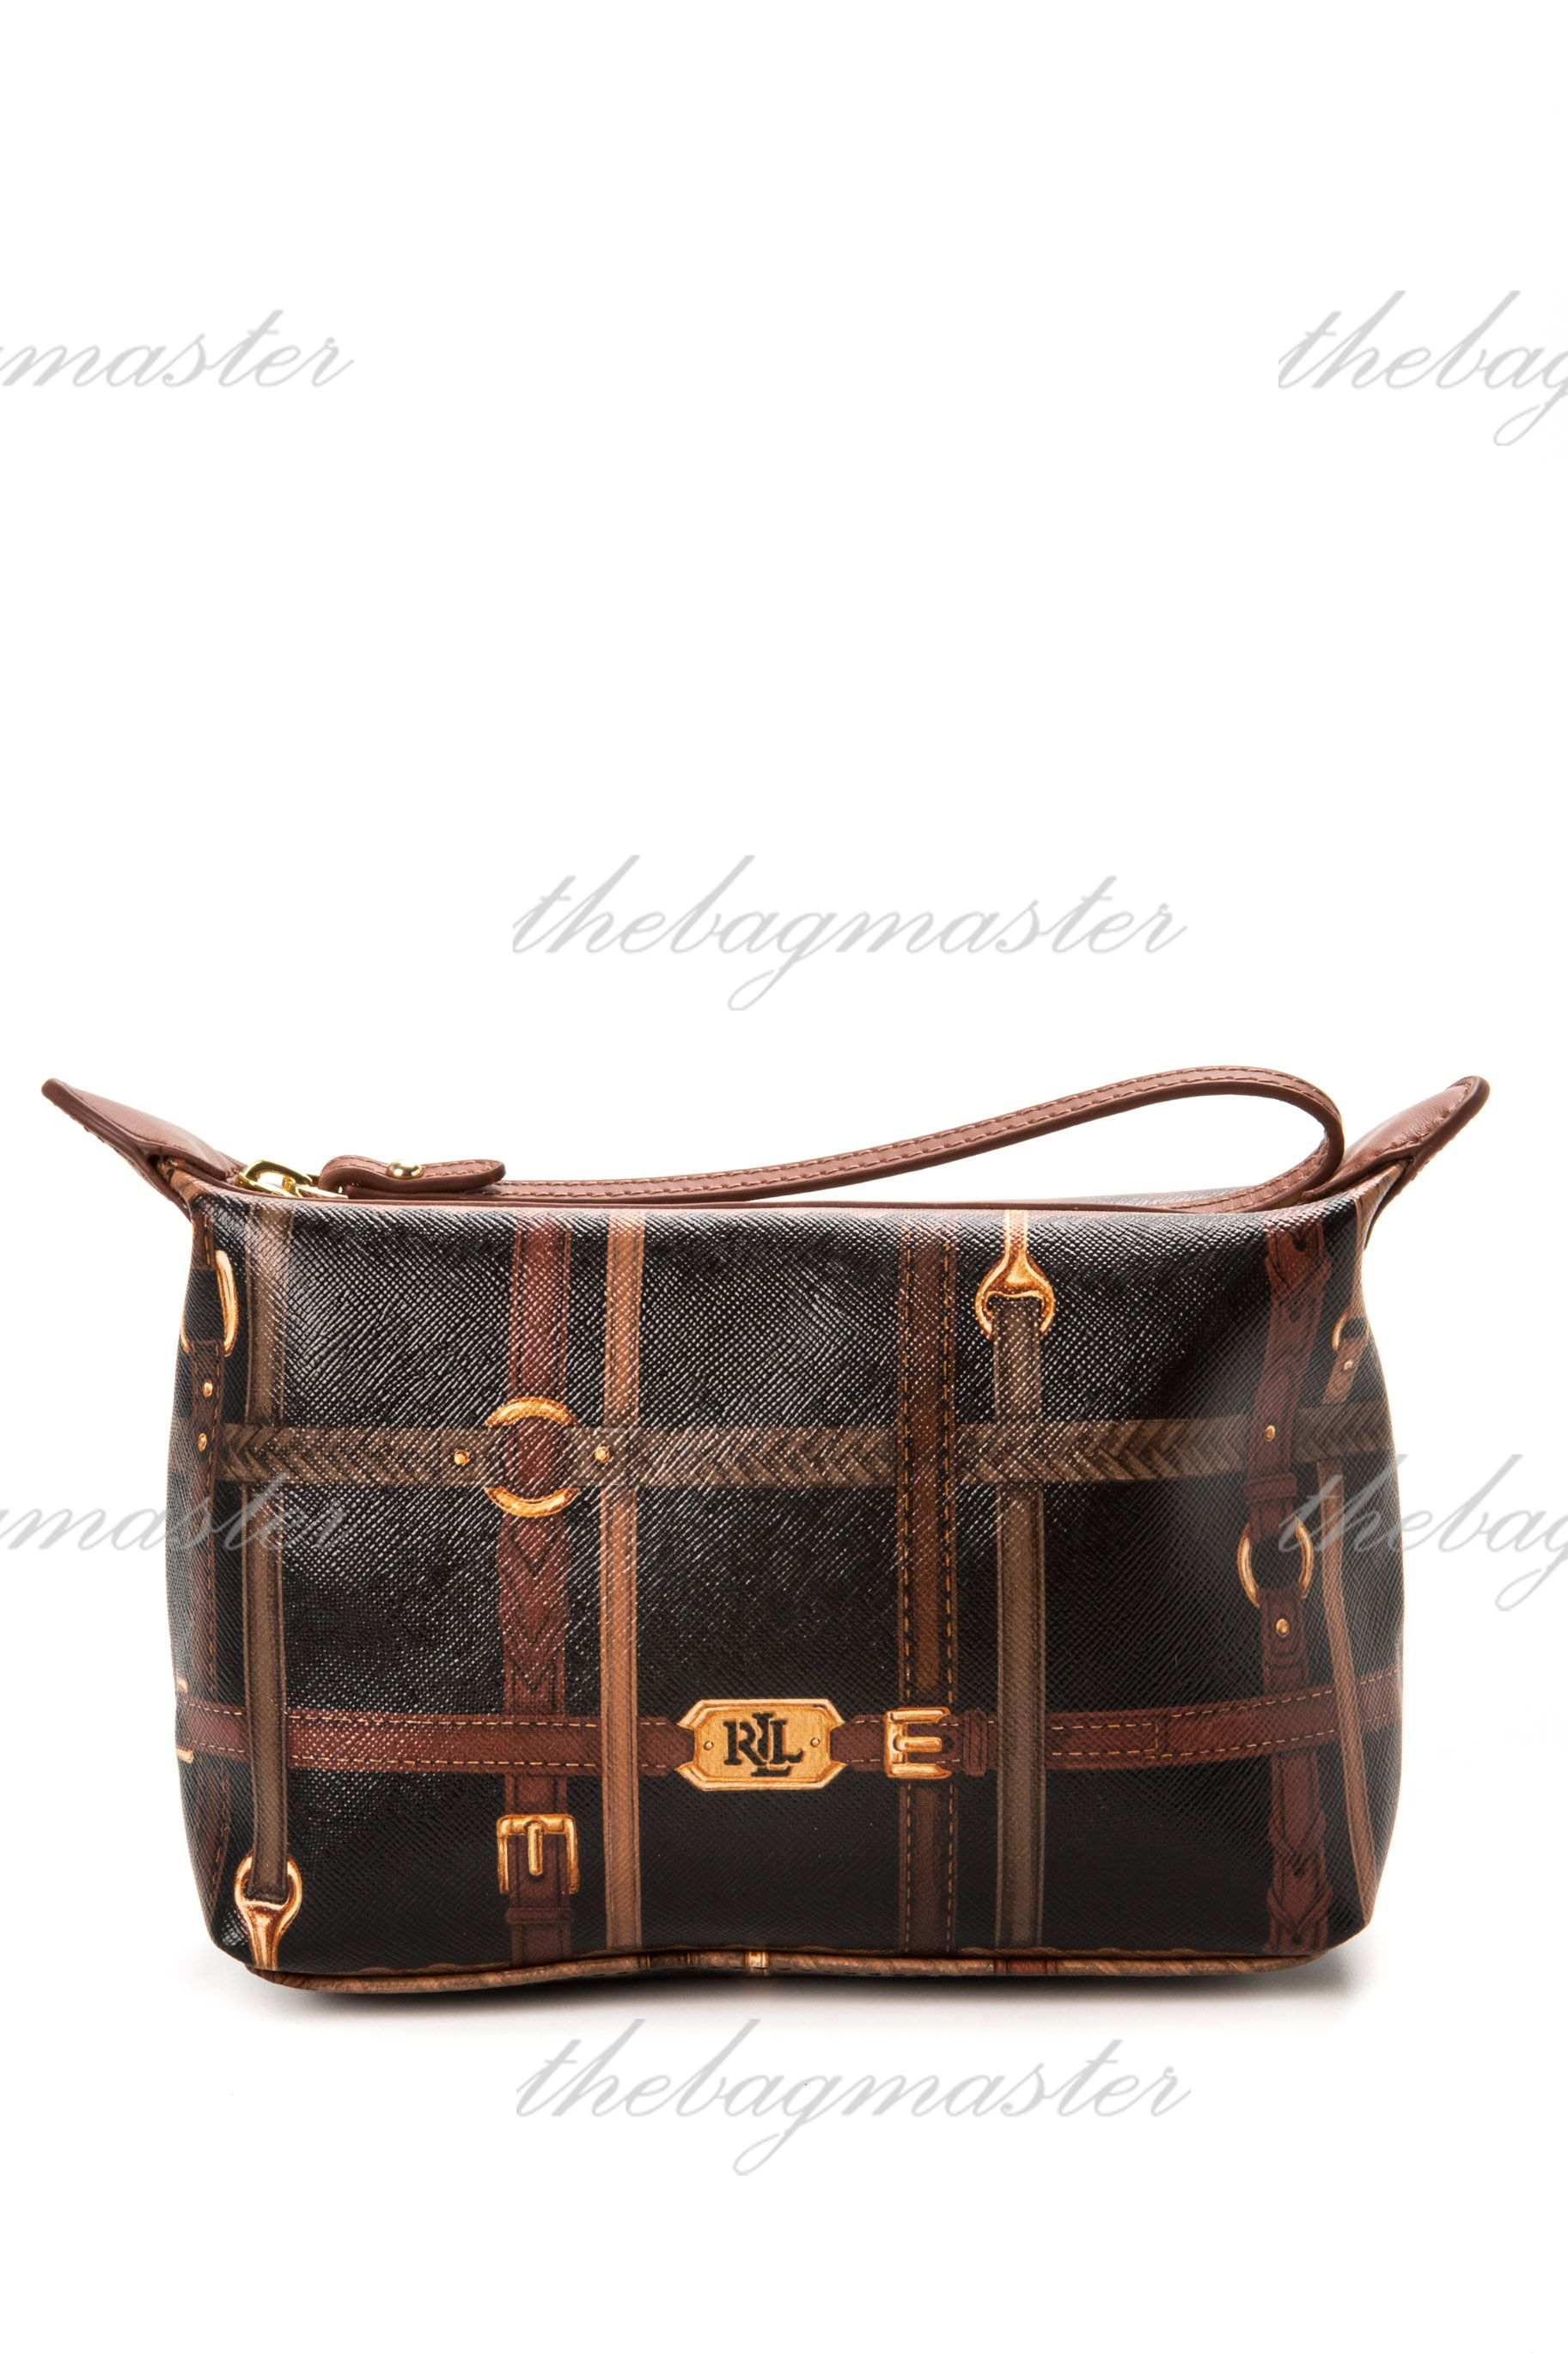 5a3f3575fa Ralph Lauren Gallaway Belting Cosmetic Pouch - Brown — The Lifestyle ...